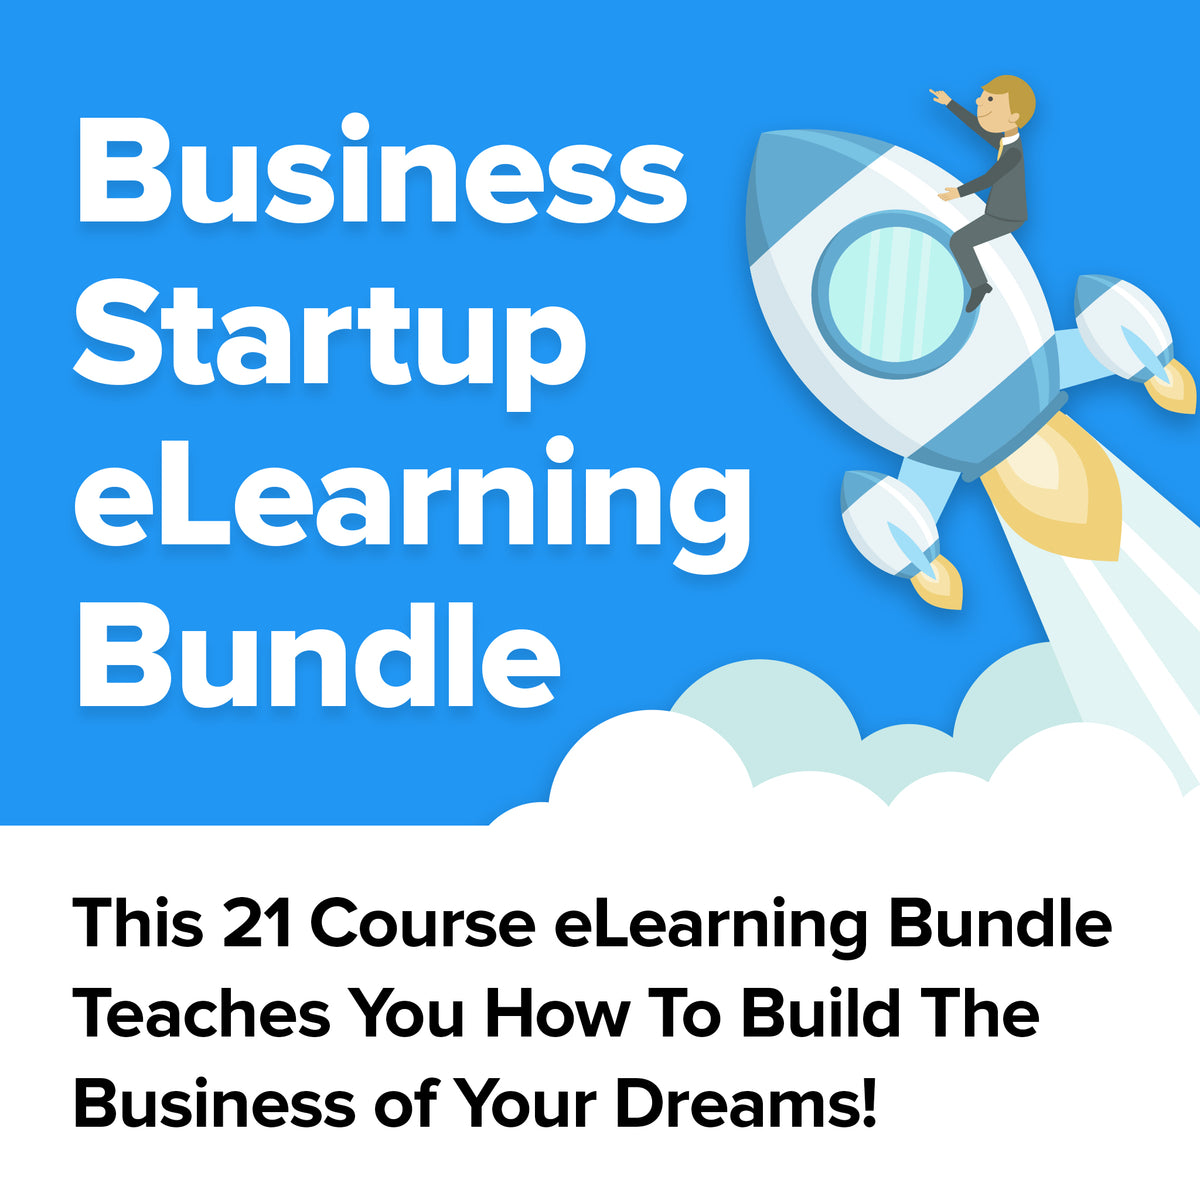 Business Startup eLearning Bundle - FREE with purchase of any membership